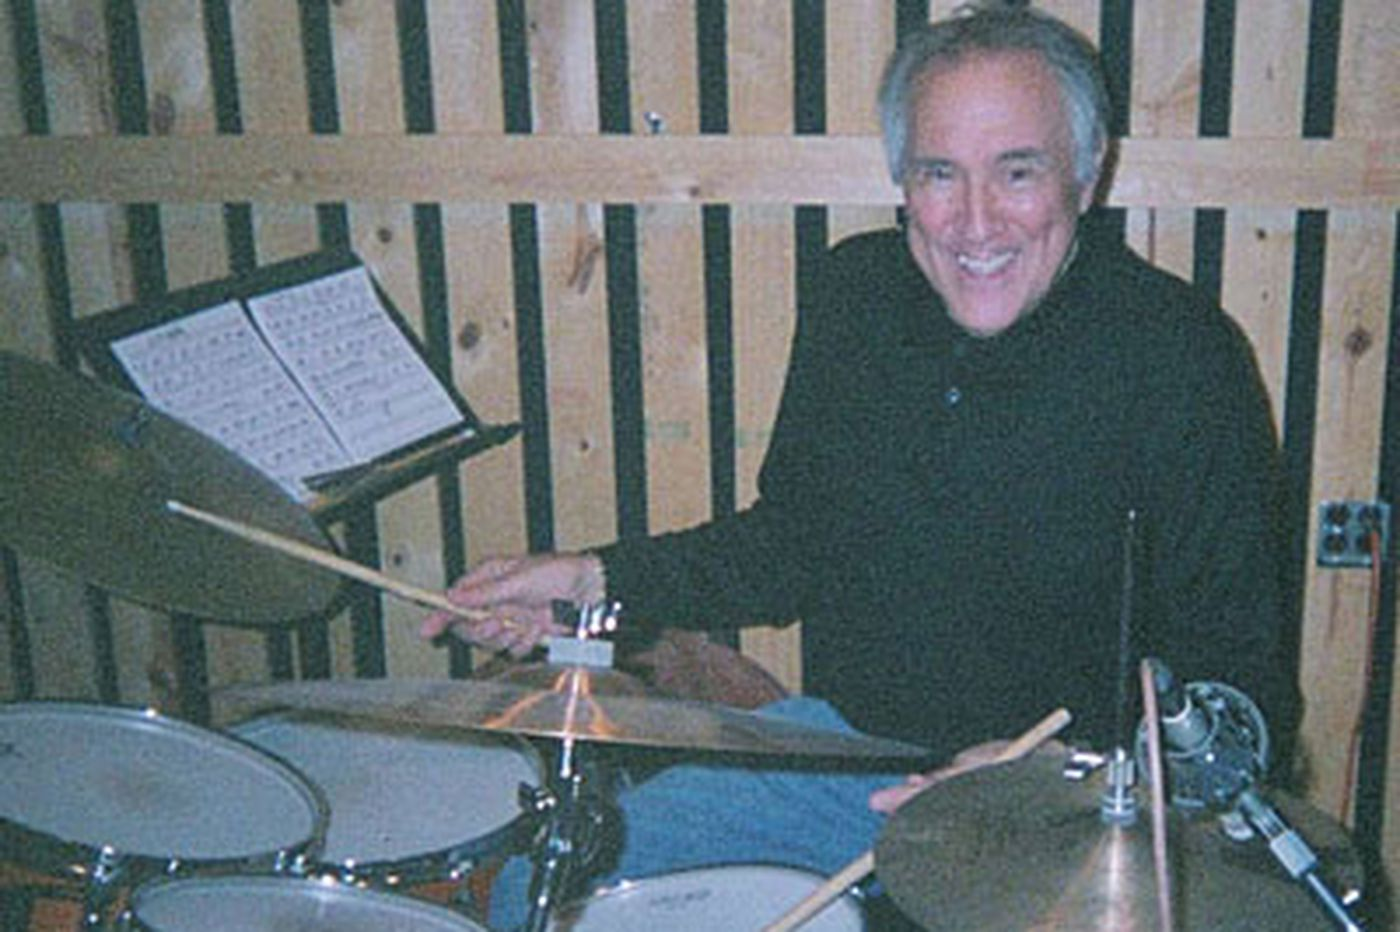 Carl A. Mottola, 70, drummer and teacher